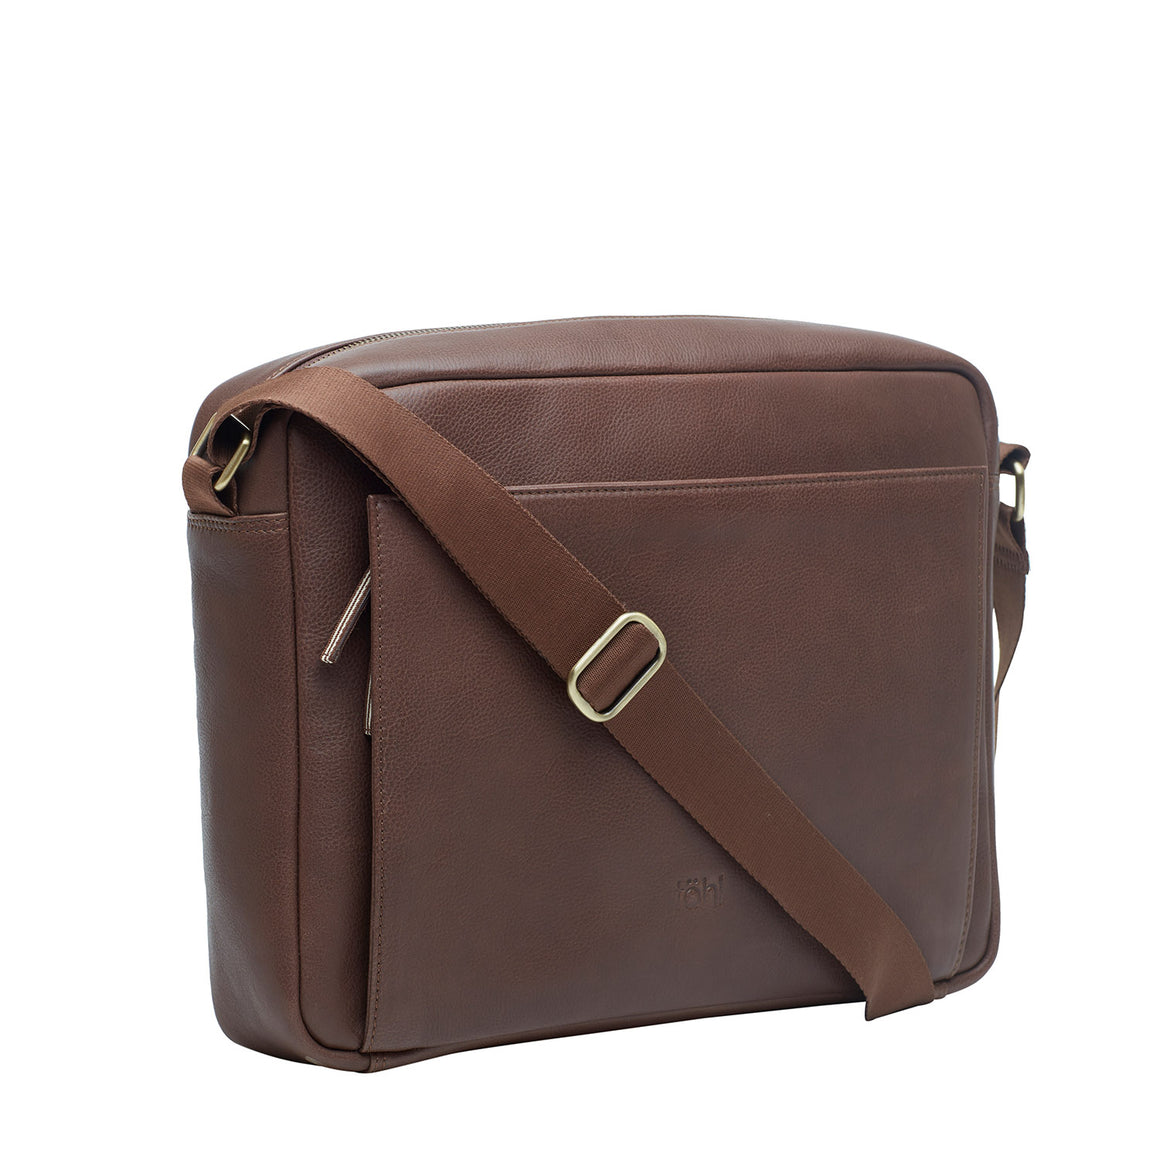 MS 0009 - TOHL MURA MEN'S CROSSBODY & MESSENGER - MUD